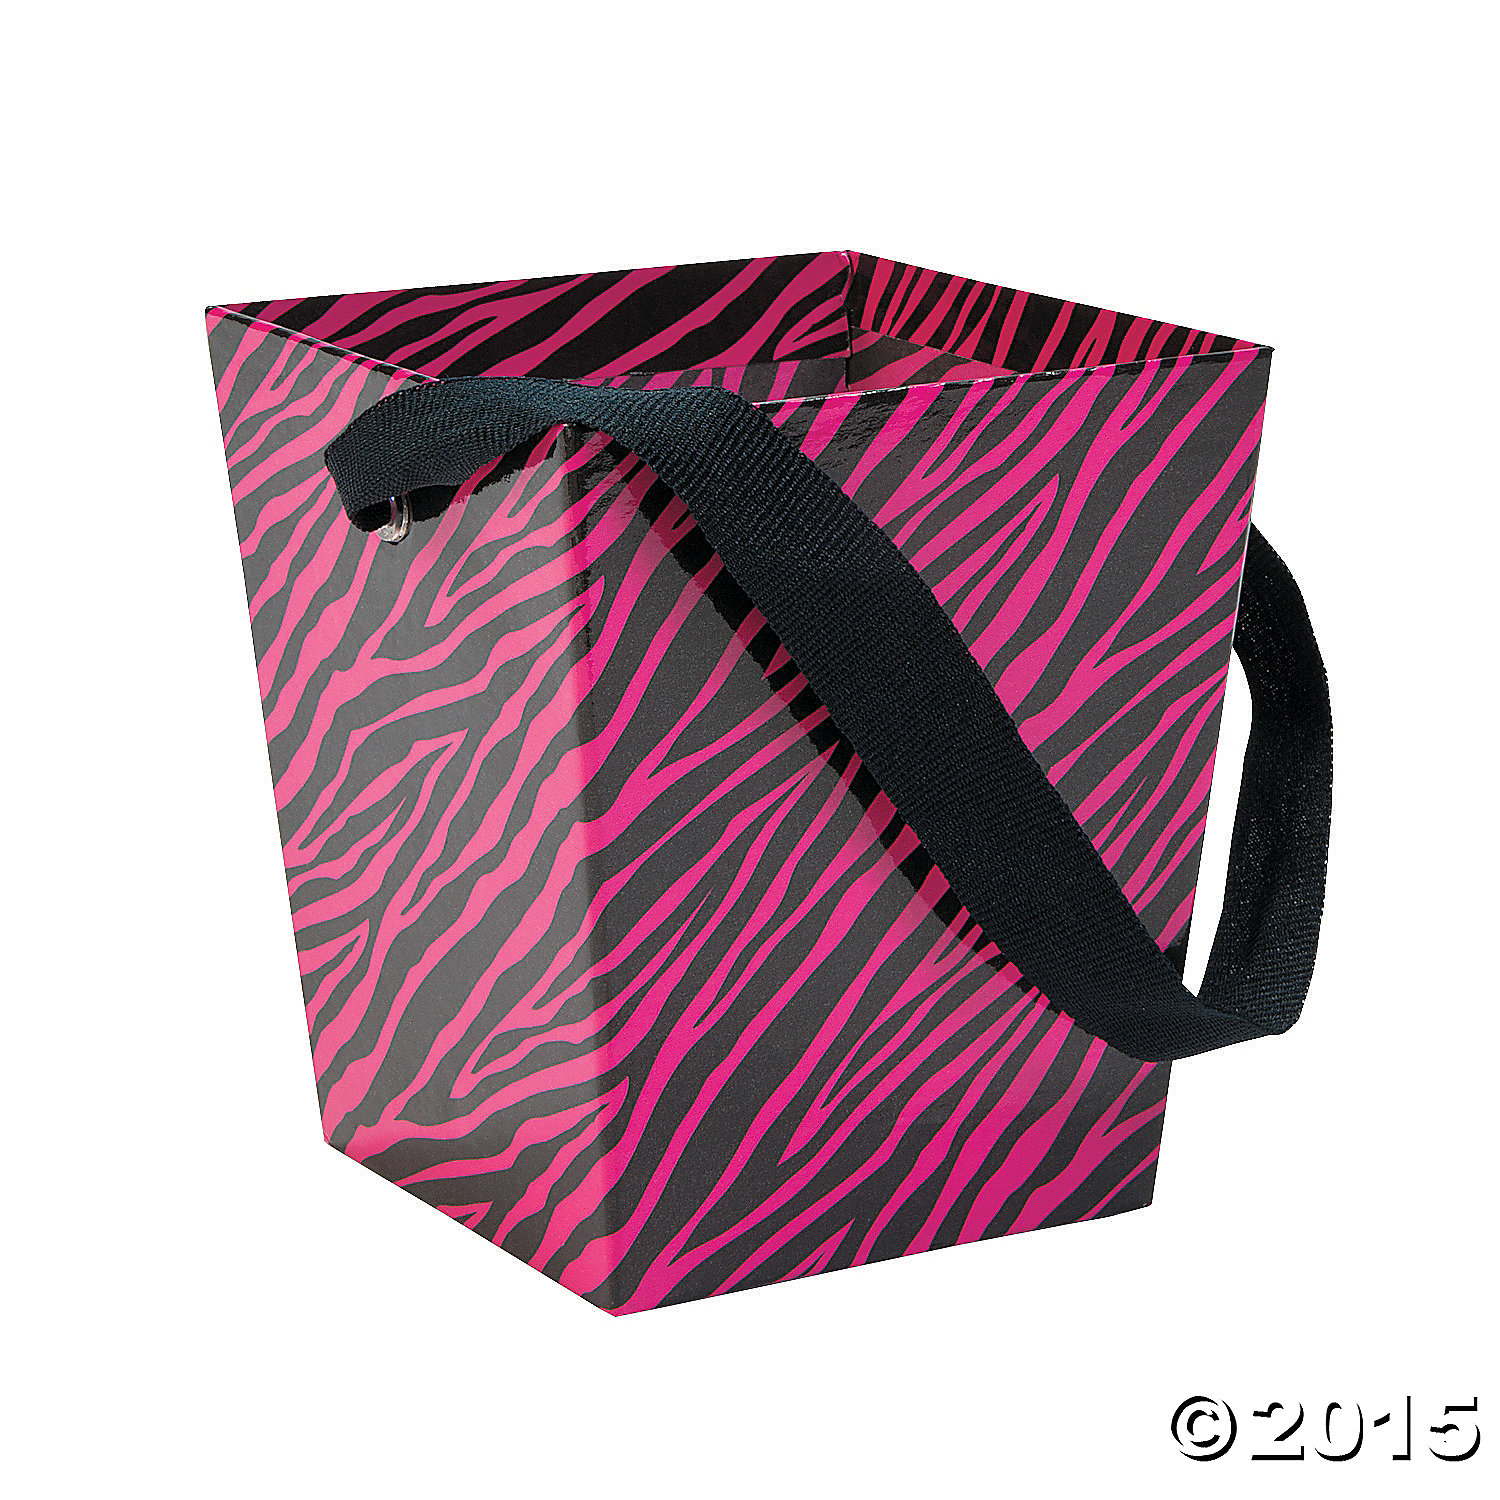 6 Pieces Cardboard Hot Pink Zebra Buckets with Ribbon Handle